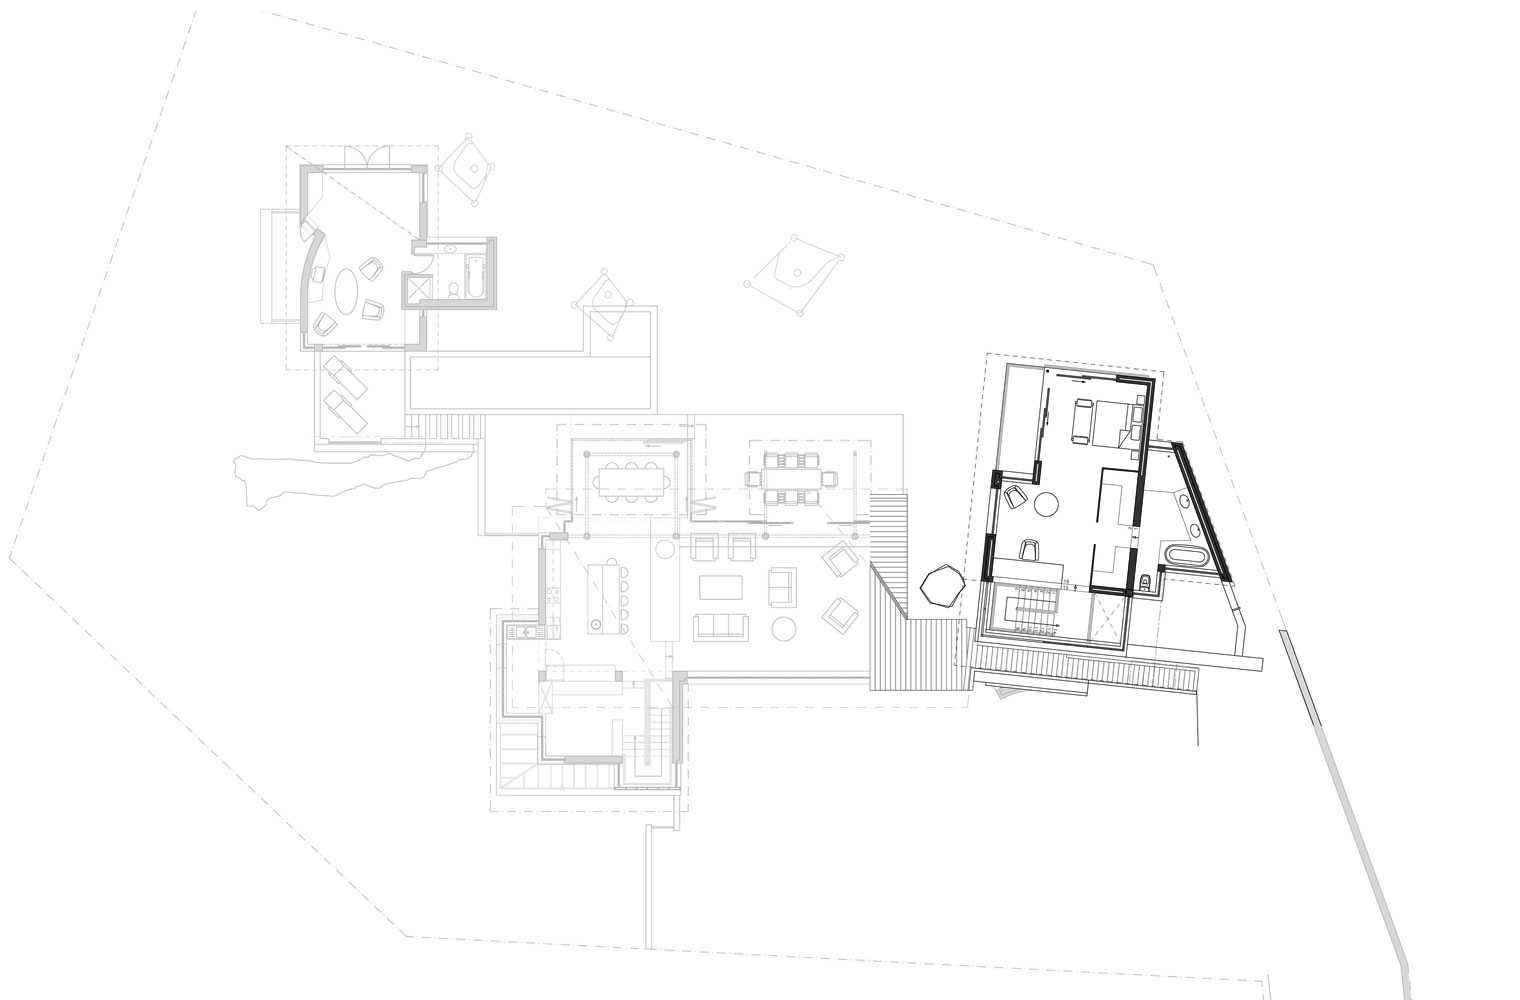 House Vith - First Floor Plan